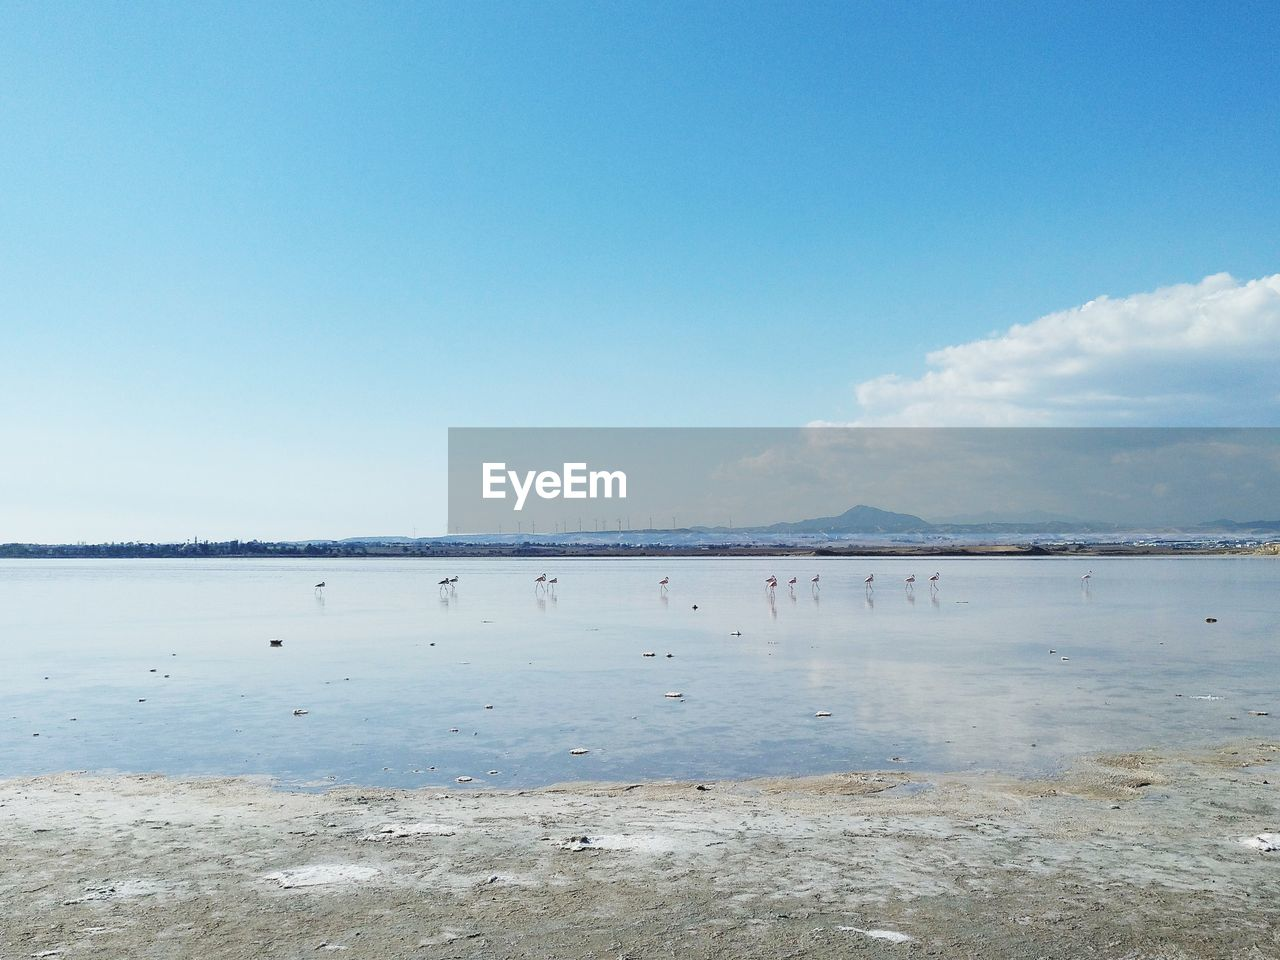 sky, water, scenics - nature, beauty in nature, tranquility, tranquil scene, copy space, blue, sea, day, nature, non-urban scene, cloud - sky, beach, land, no people, idyllic, outdoors, horizon, salt flat